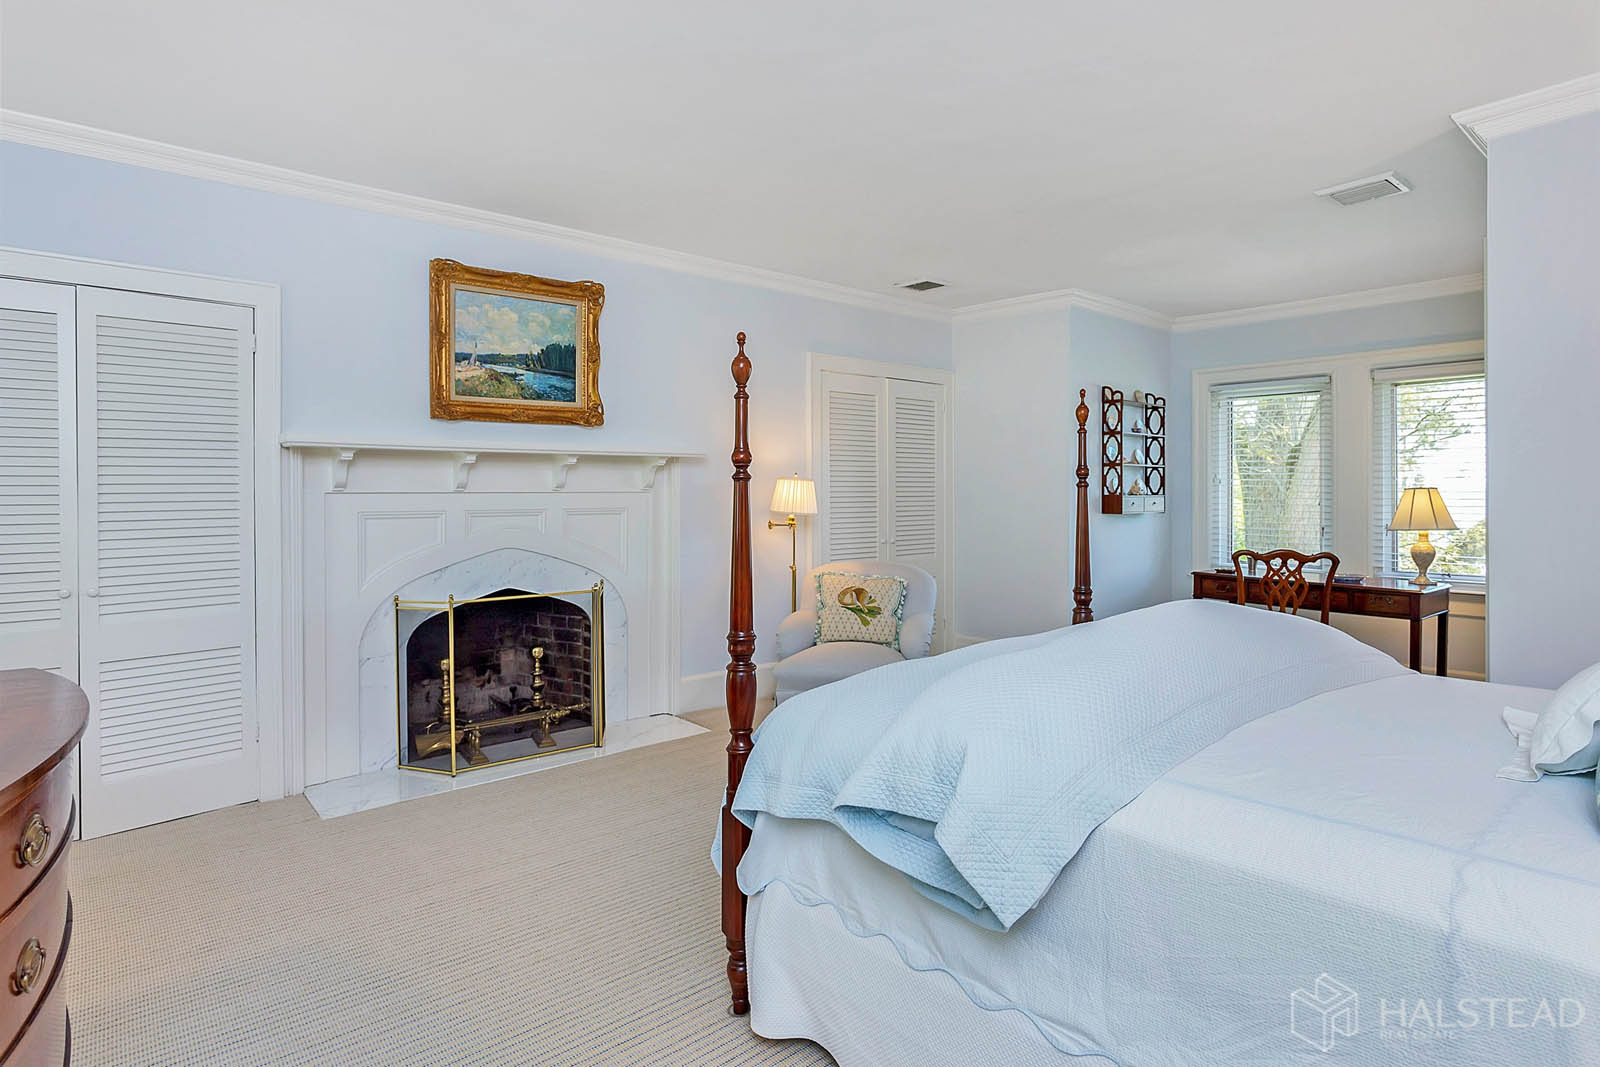 8 Butlers Island Road, Darien, Connecticut, 06820, $7,495,000, Property For Sale, Halstead Real Estate, Photo 28